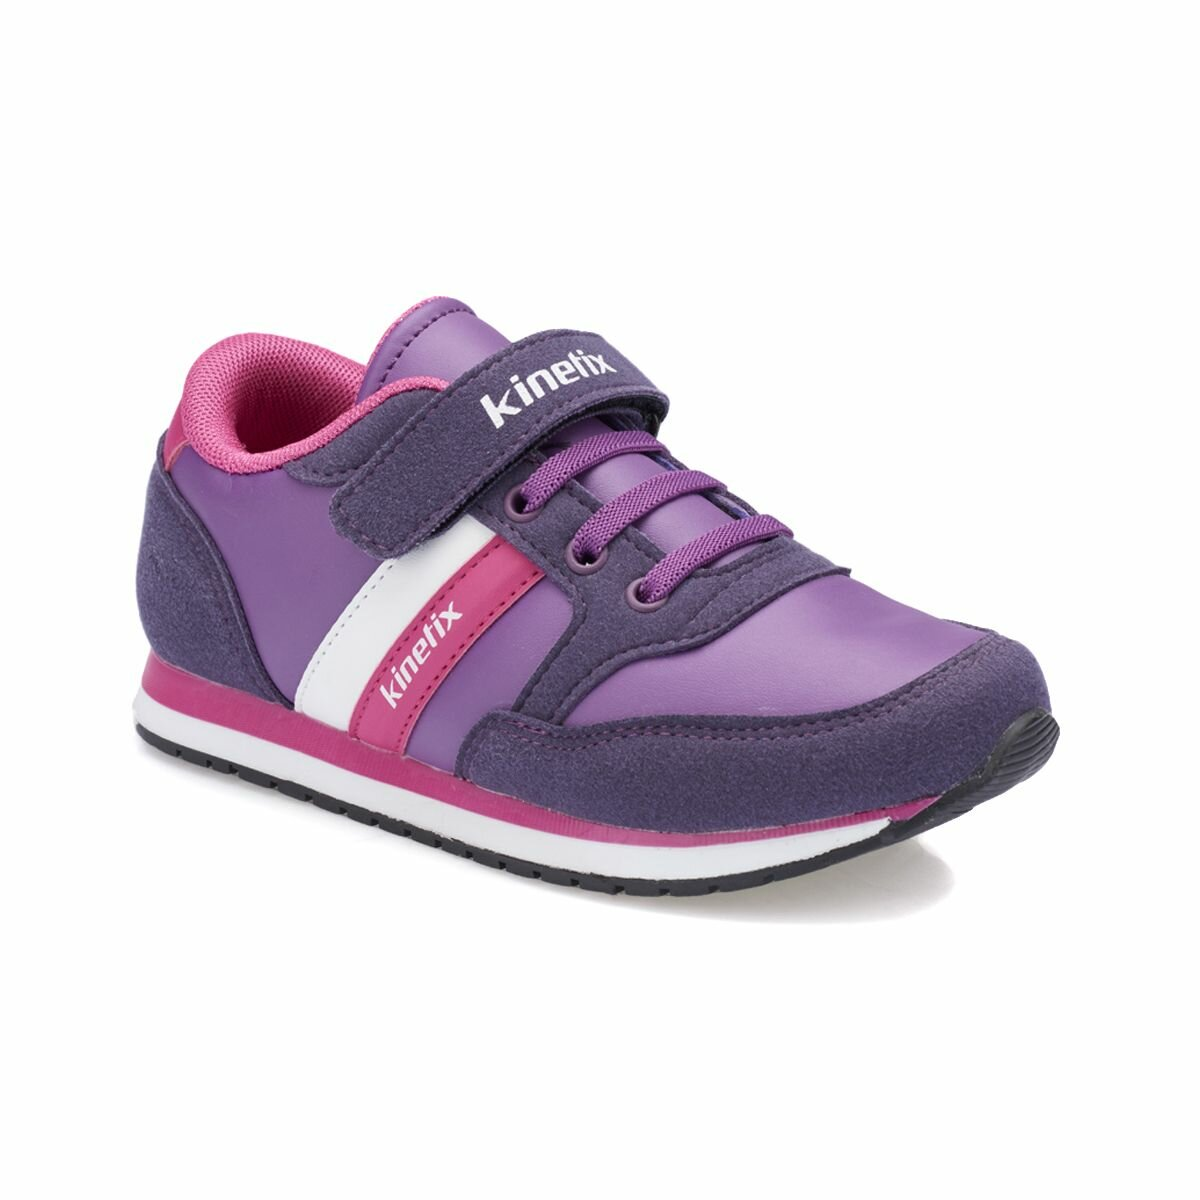 FLO PAYOF PU Purple Female Child Sneaker Shoes KINETIX